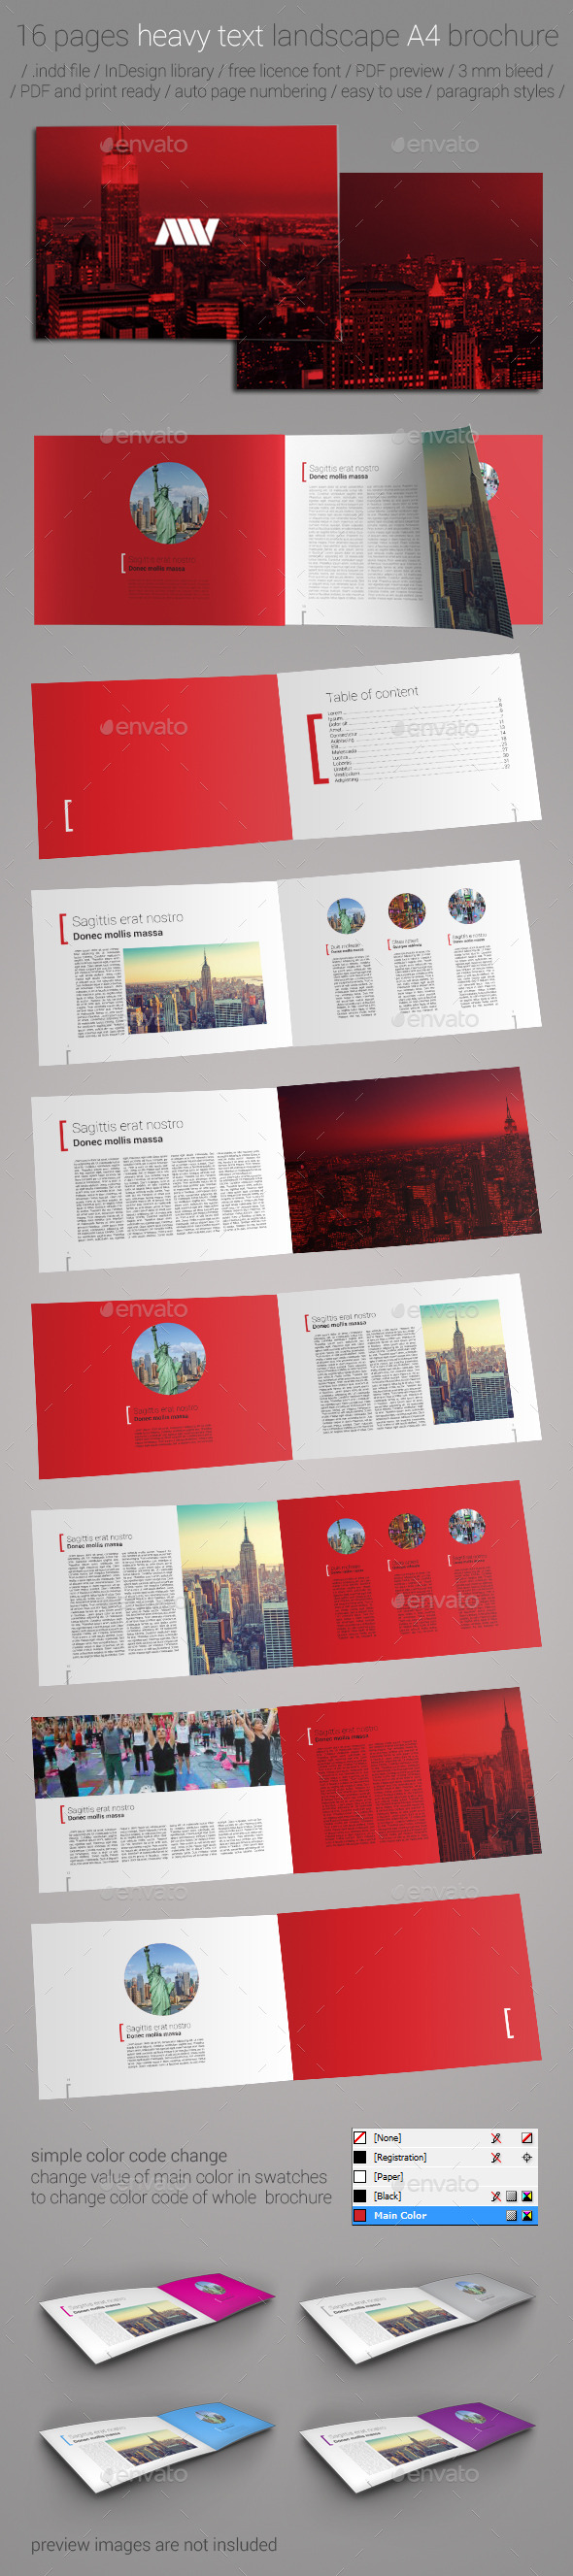 16 Pages A4 Landscape Brochure Template